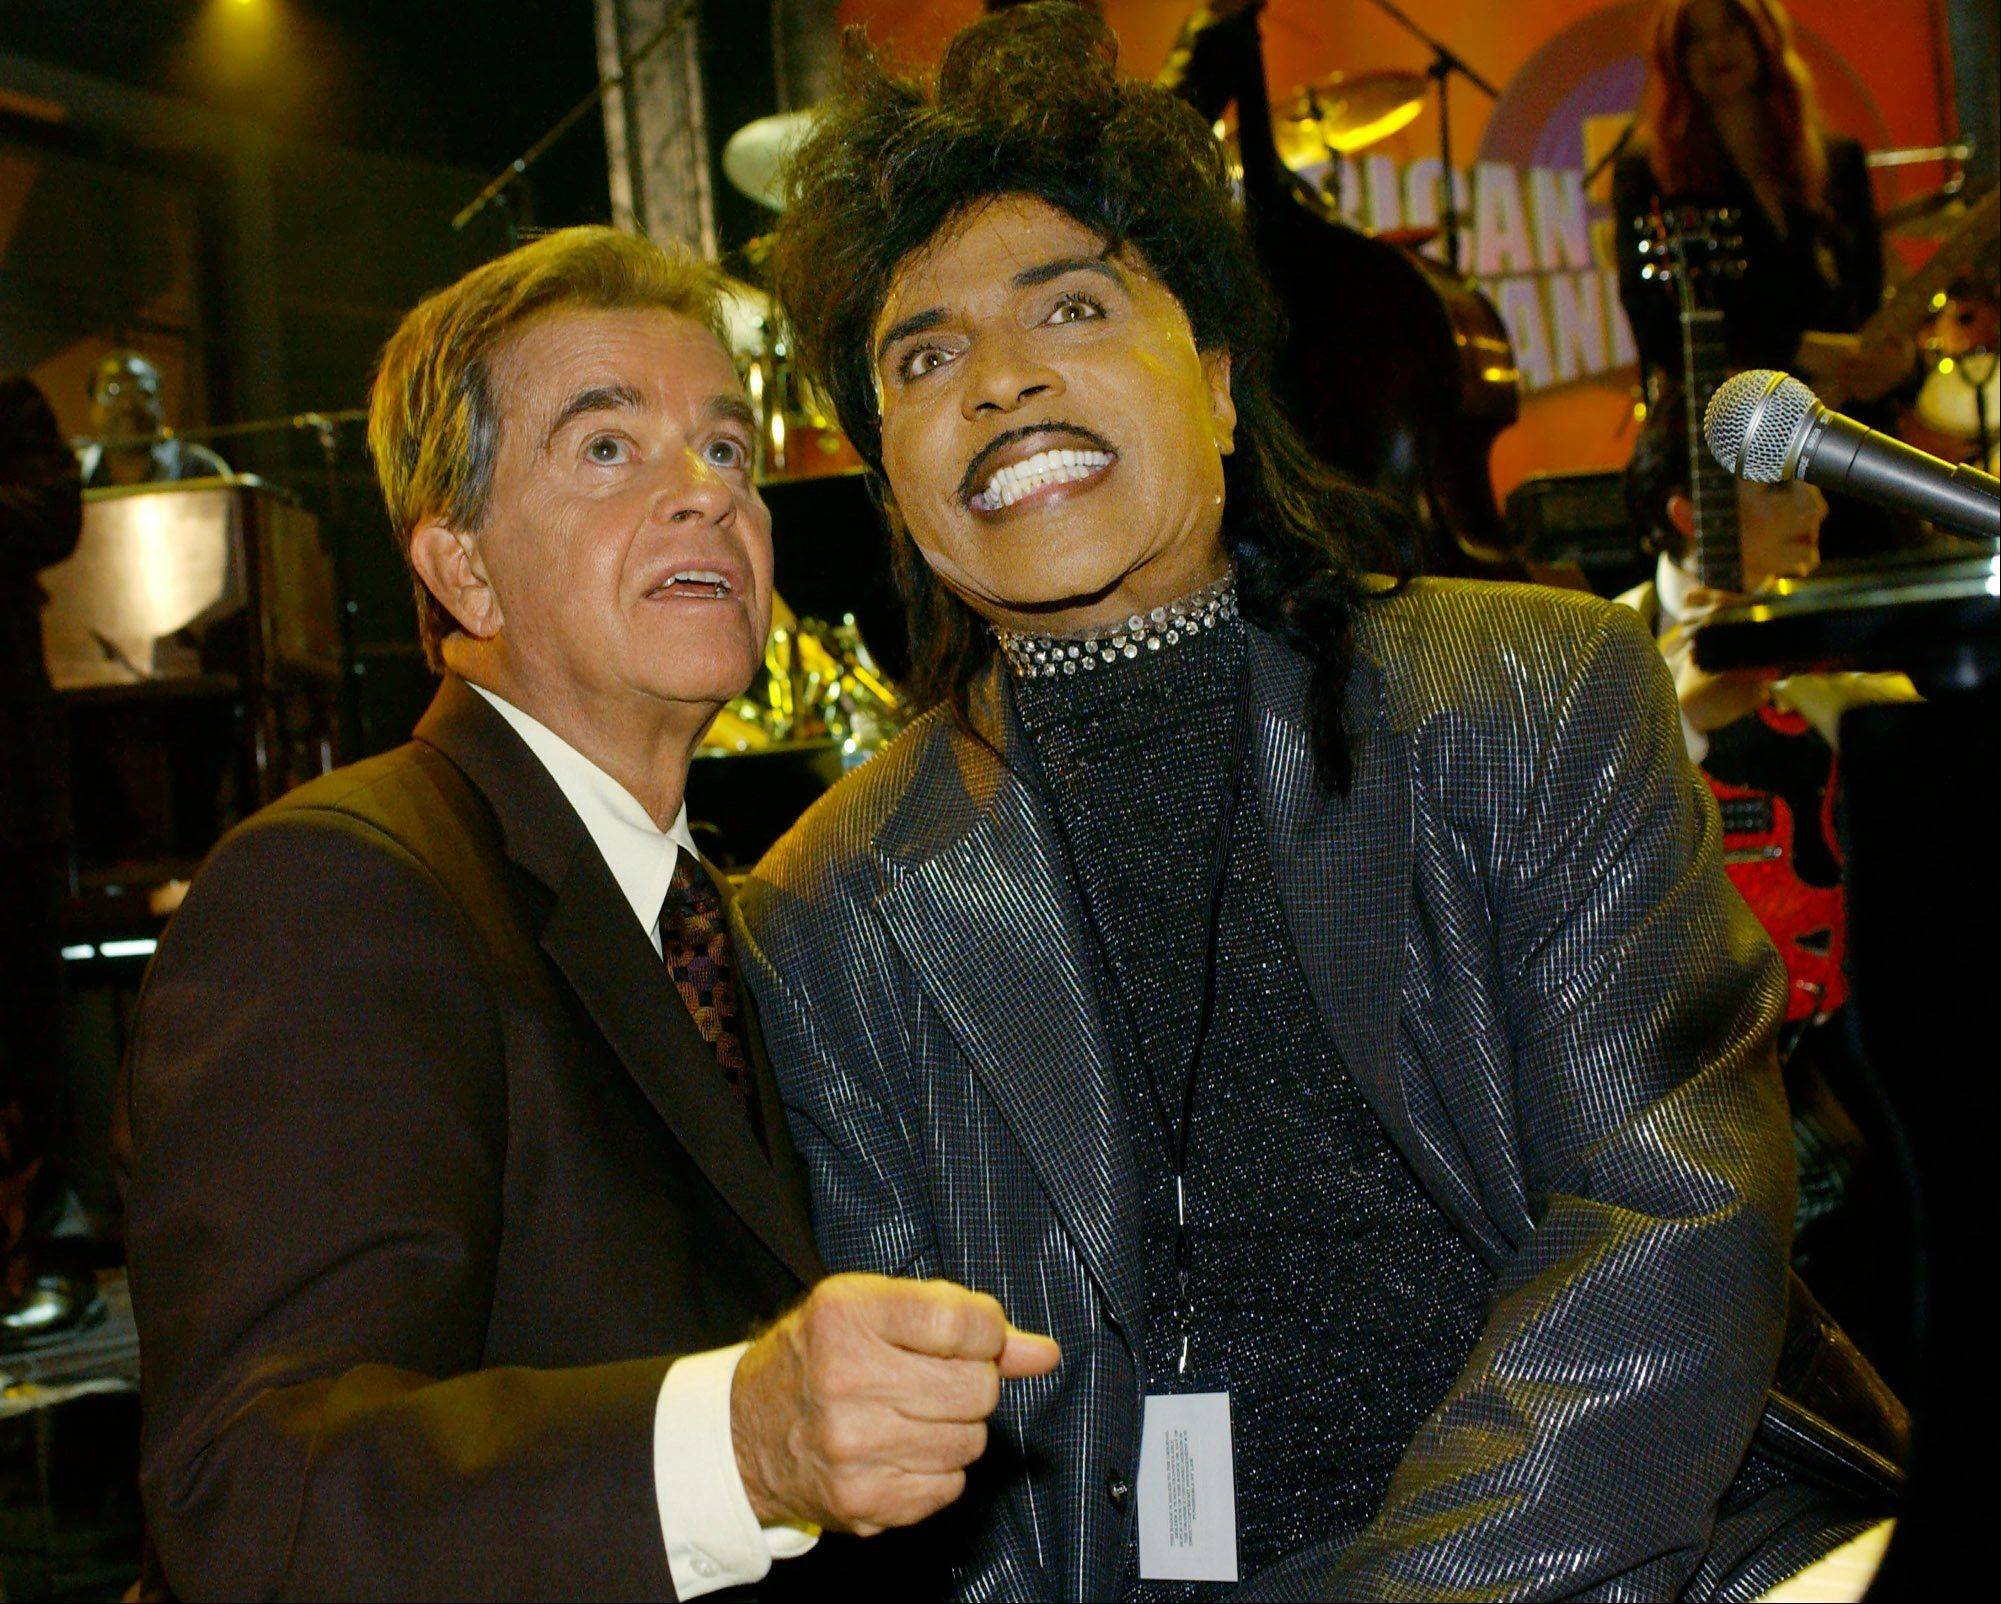 """American Bandstand"" host Dick Clark, left, has a word with Little Richard before the ""supergroup"" finale of ""American Bandstand's 50th...A Celebration,"" Sunday, April 21, 2002, at the Pasadena Civic Auditorium in Pasadena, Calif."